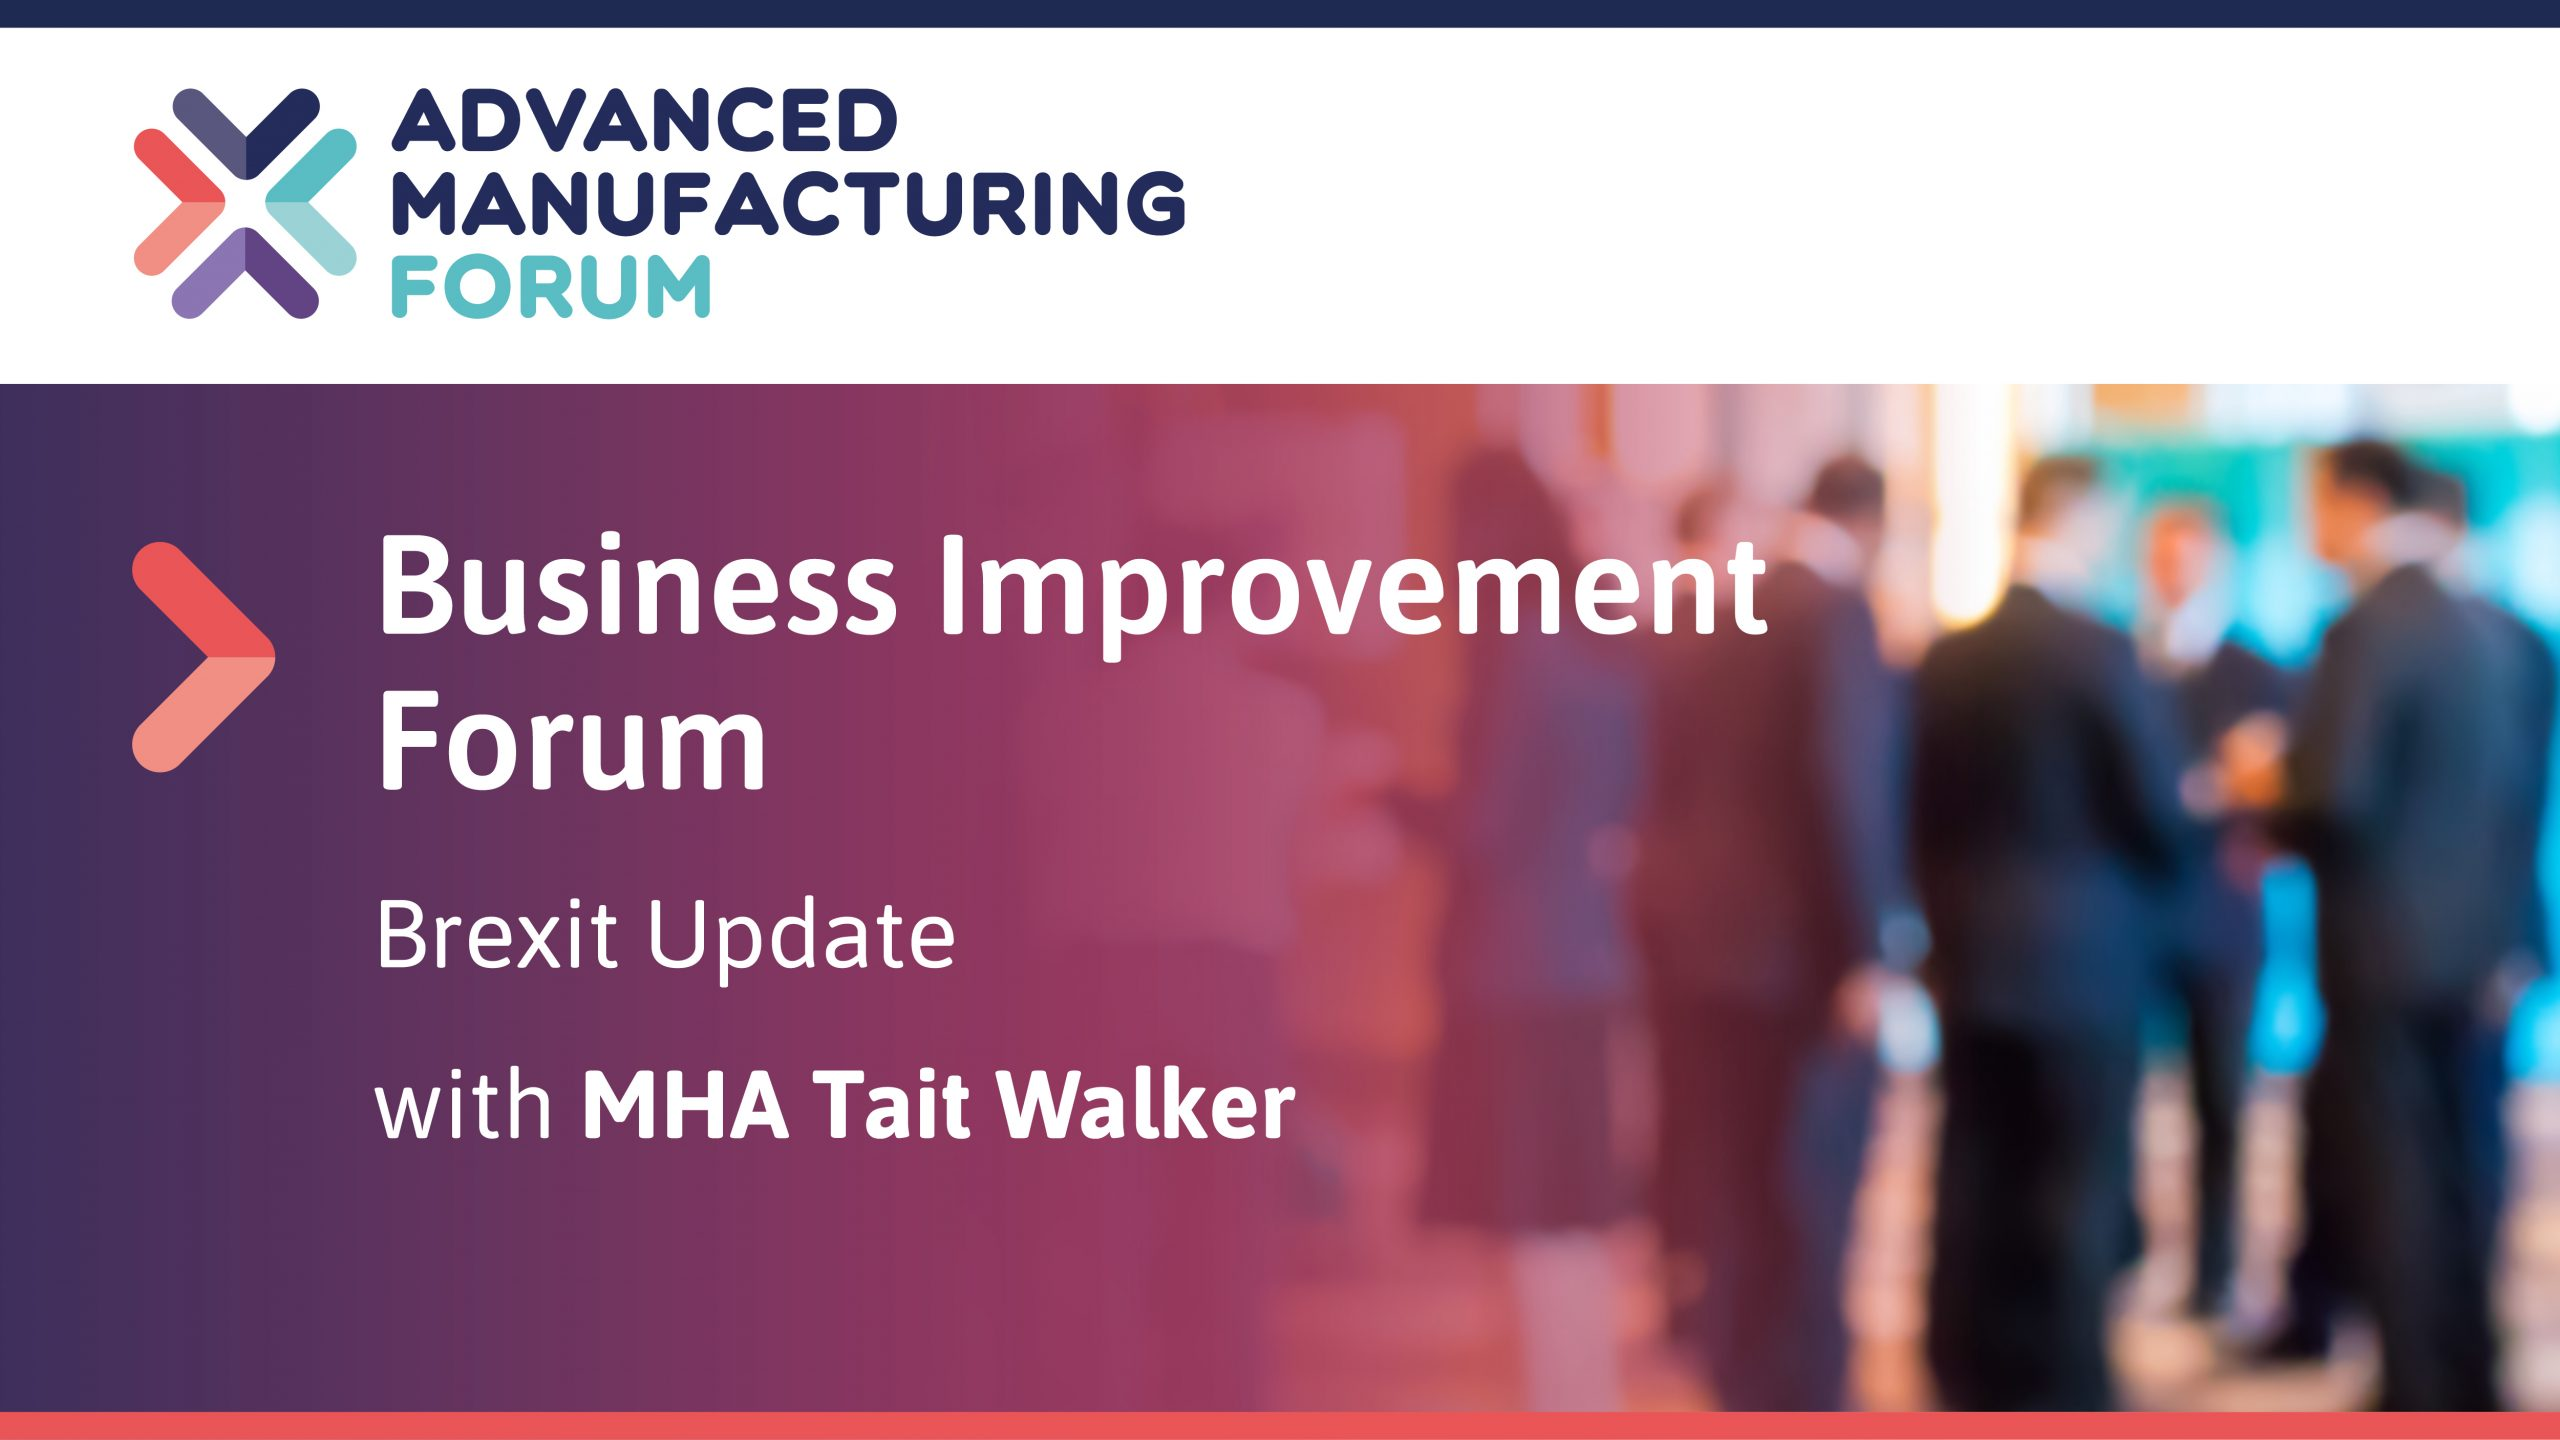 Brexit Update with MHA Tait Walker